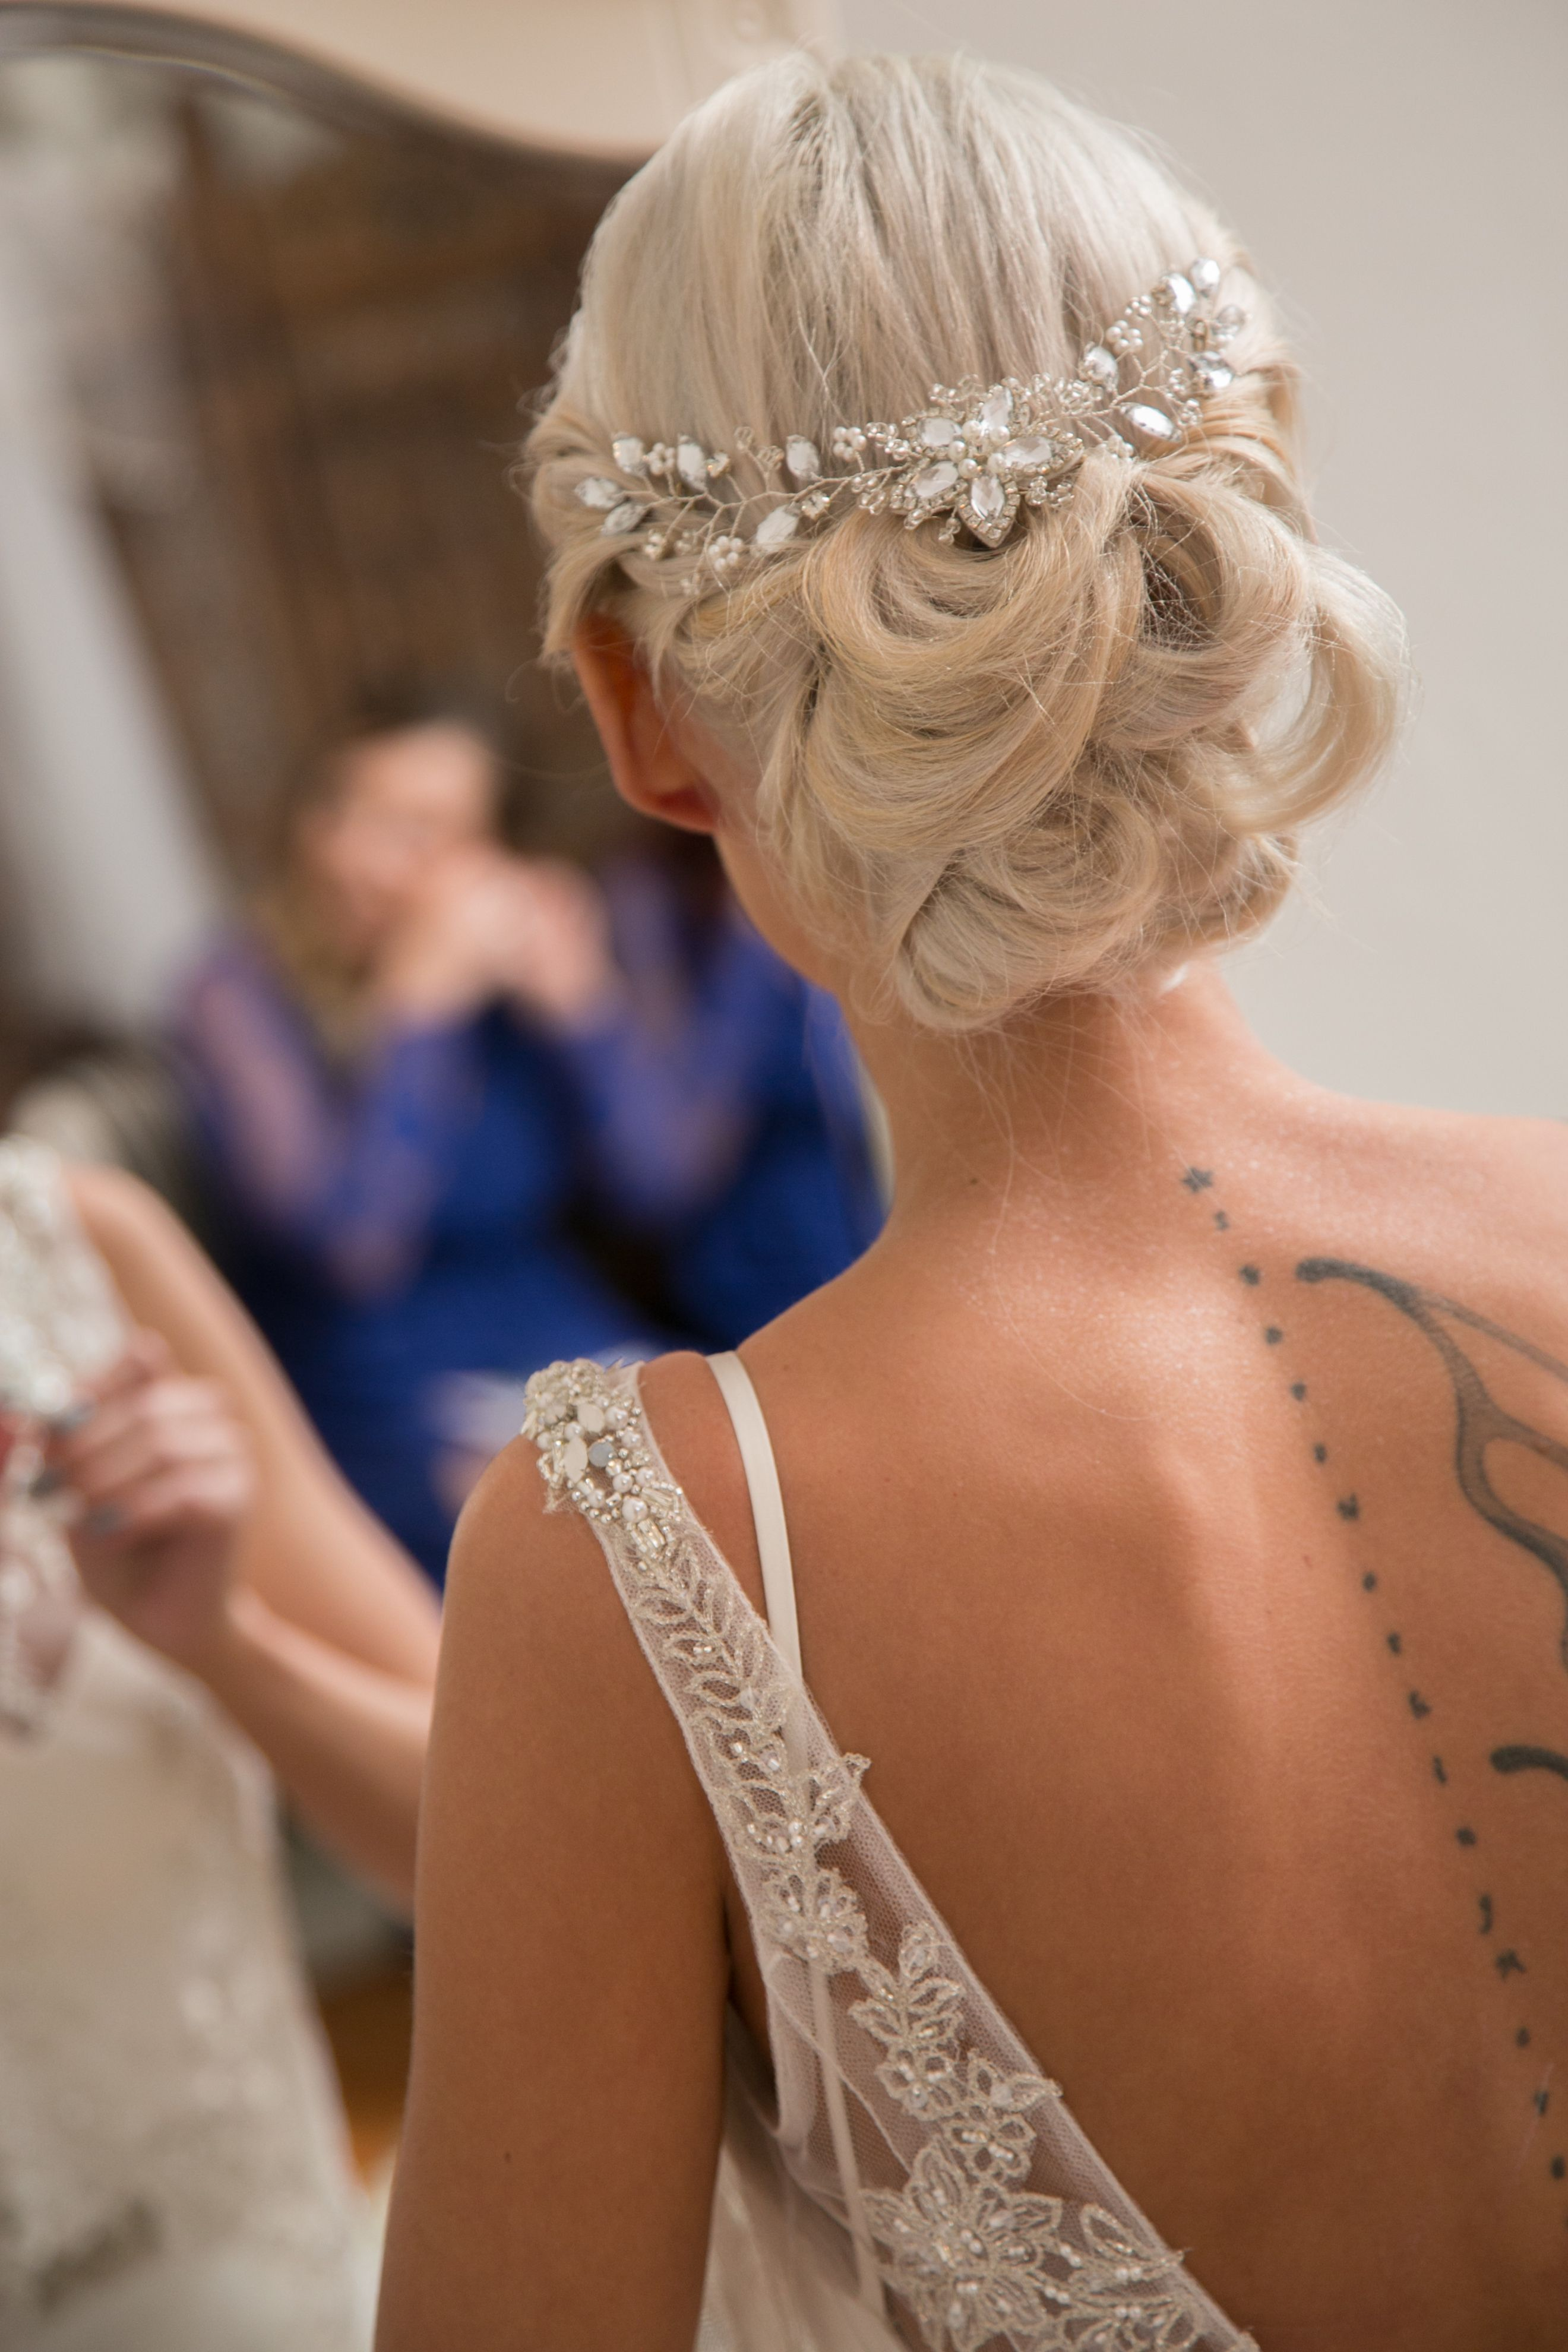 The exquisite Alysha on her special day beautifully captured by Melanie Maré Photography. Alysha accessorized her chic bridal look with a custom made #KaryMDesigns diamanté, pearl, and rhinestone floral vine clip, perfectly complimenting her bridal upstyle #realbride #bridalaccessories #hairaccessories